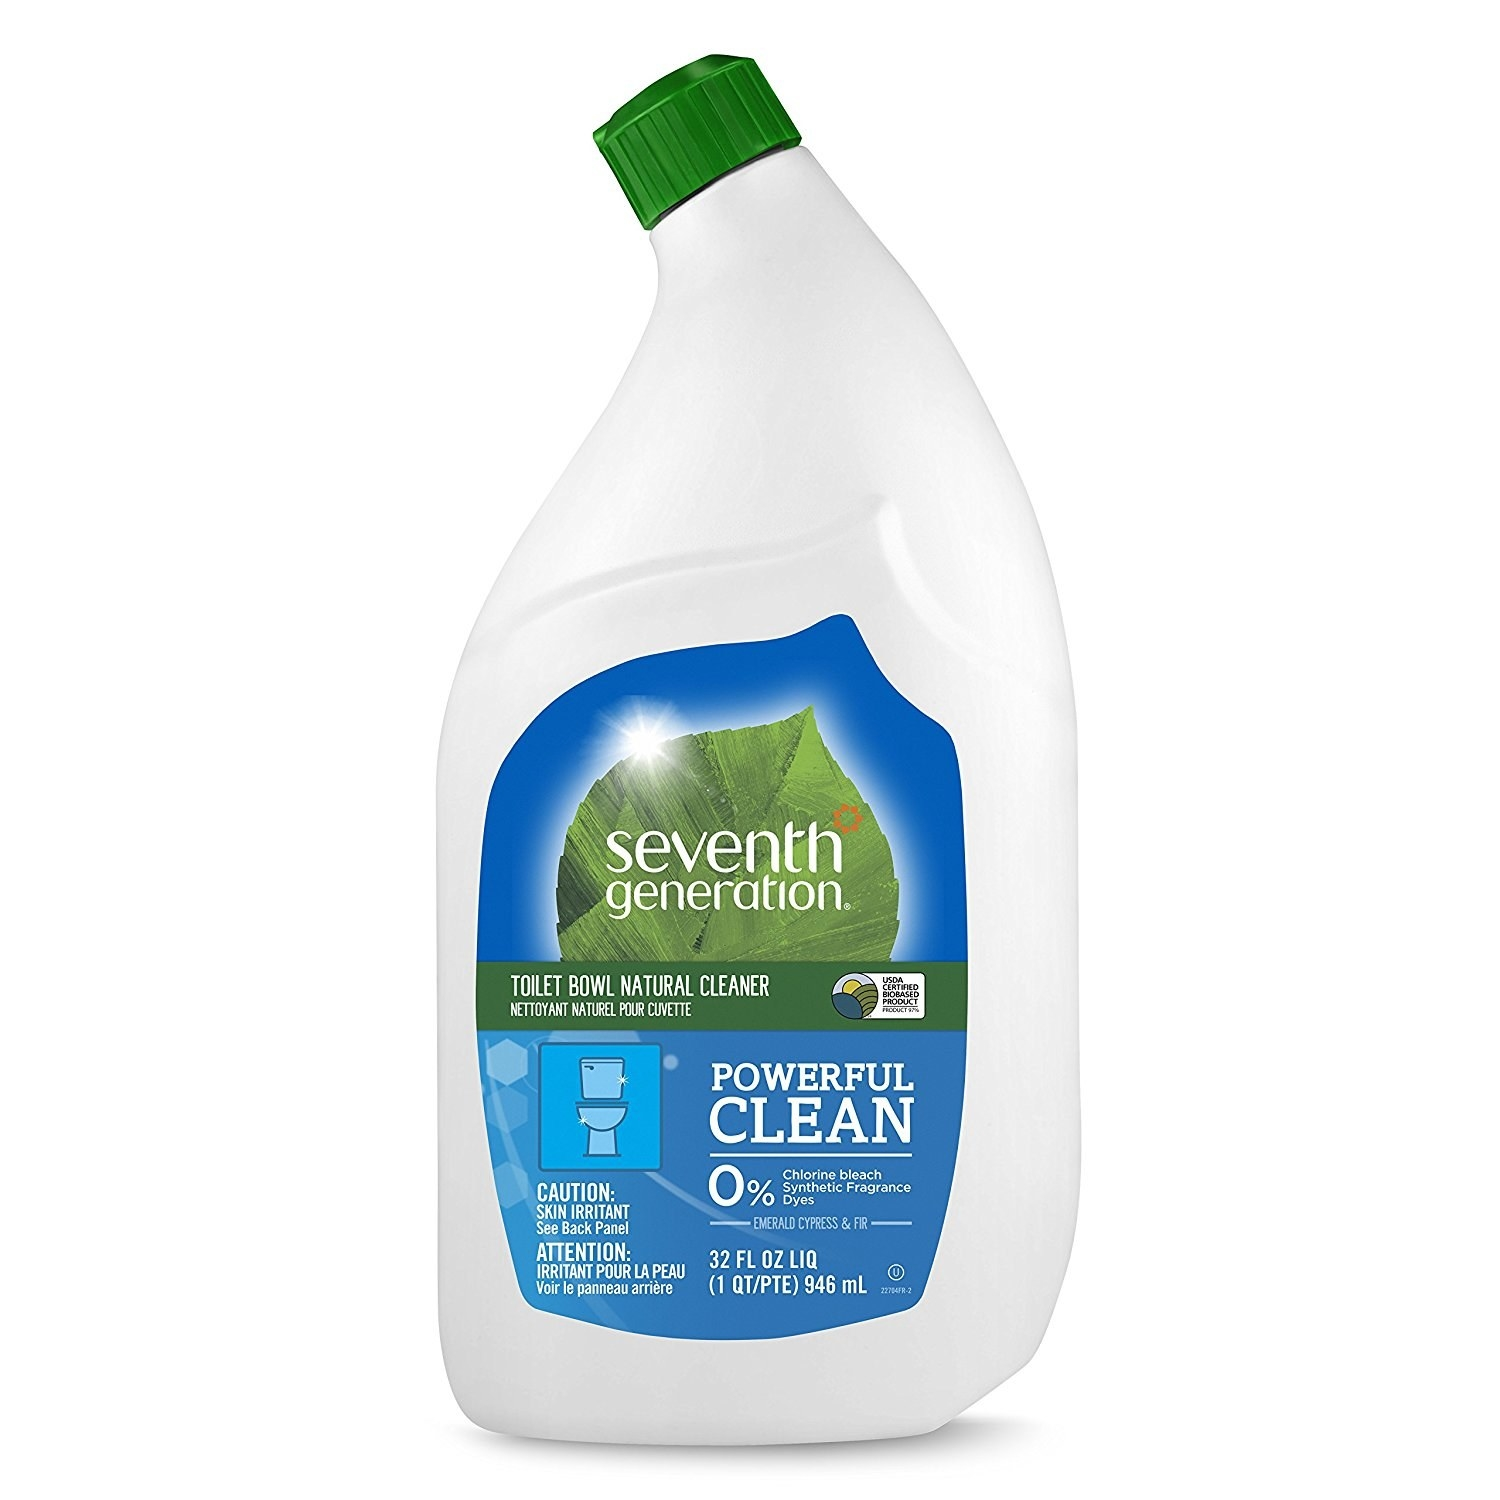 A toilet bowl cleaner so your throne is as pristine as it should be 28 Amazing Cruelty Free Cleaning Products That People Actually  . Bathroom Cleaner Without Bleach. Home Design Ideas